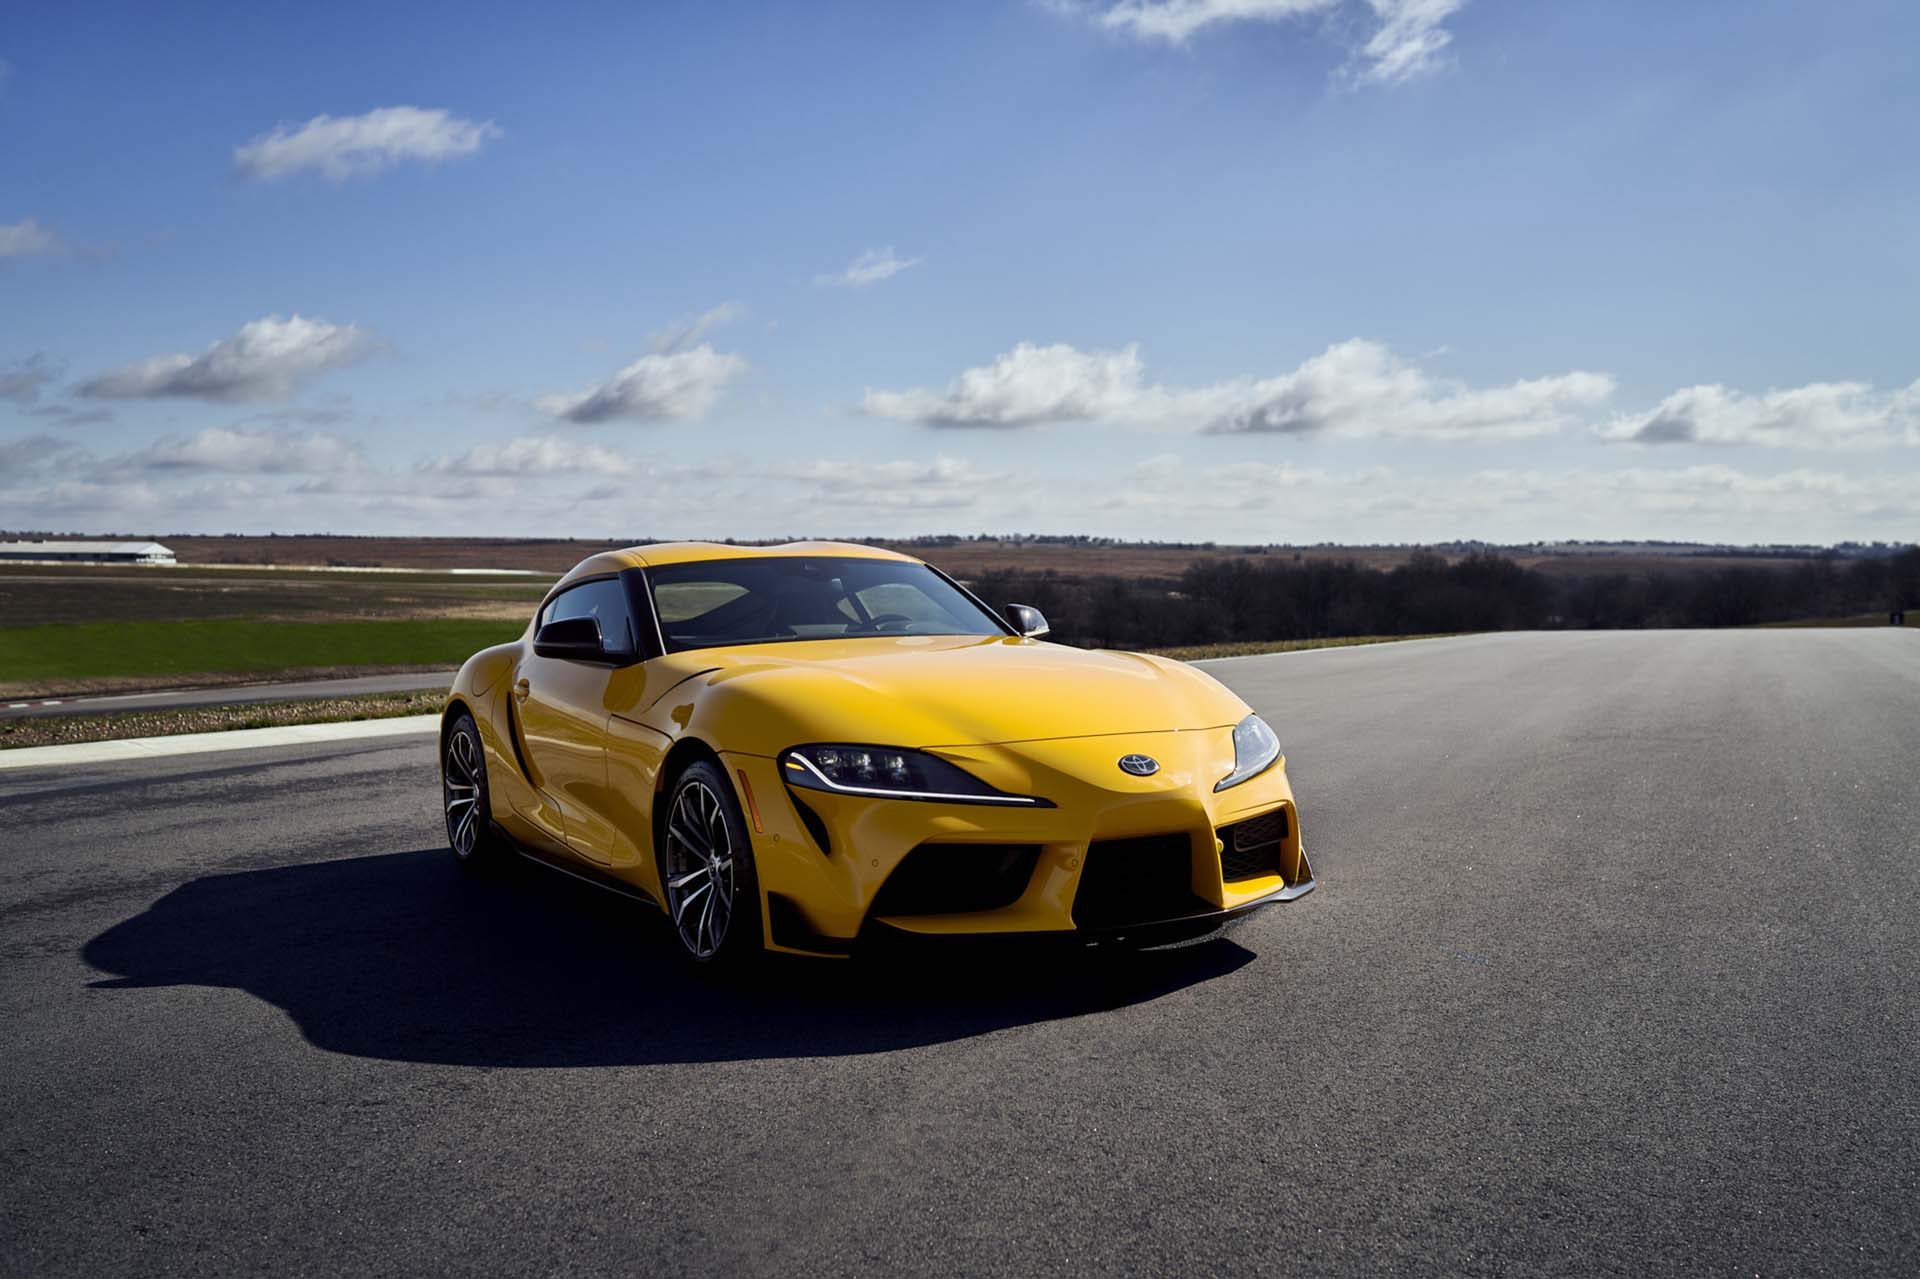 First drive review: The 2021 Toyota Supra 2.0 is the one that I want